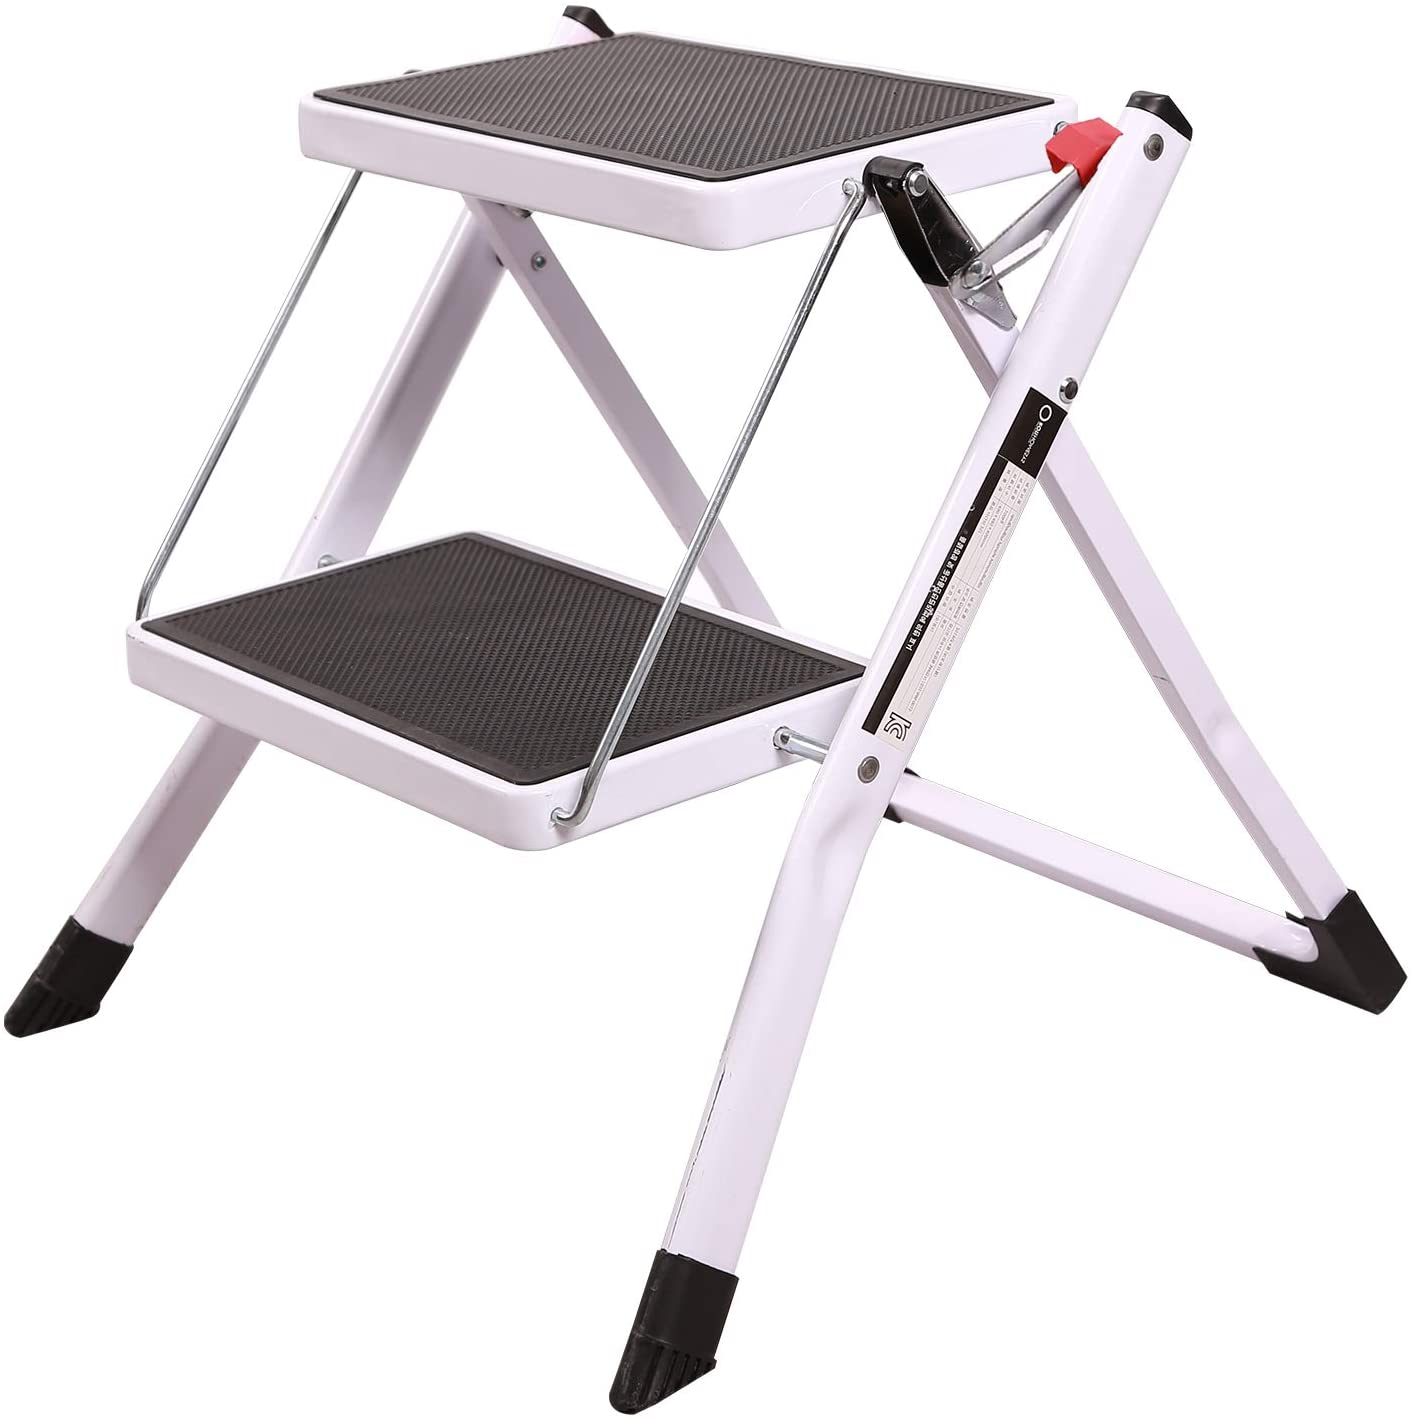 REDCAMP Small Folding Step Ladder 2 Step, Sturdy Heavy Duty Step Ladder 2 Foot Tall, Lightweight Portable White Wide Ladder Step Stool